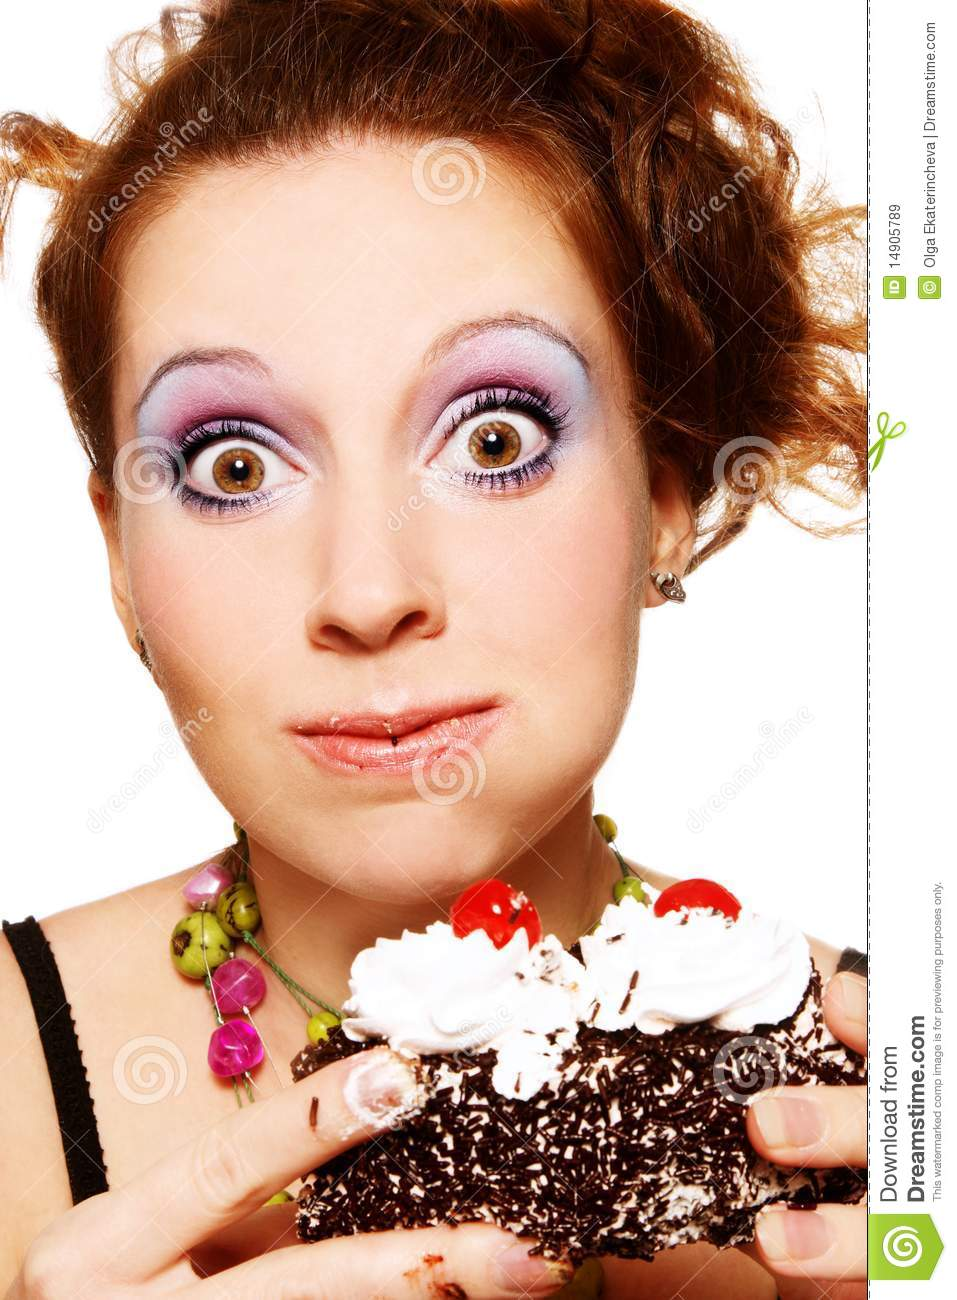 Girl Eating Cake Stock Image Image Of Cake Girl Bulimia